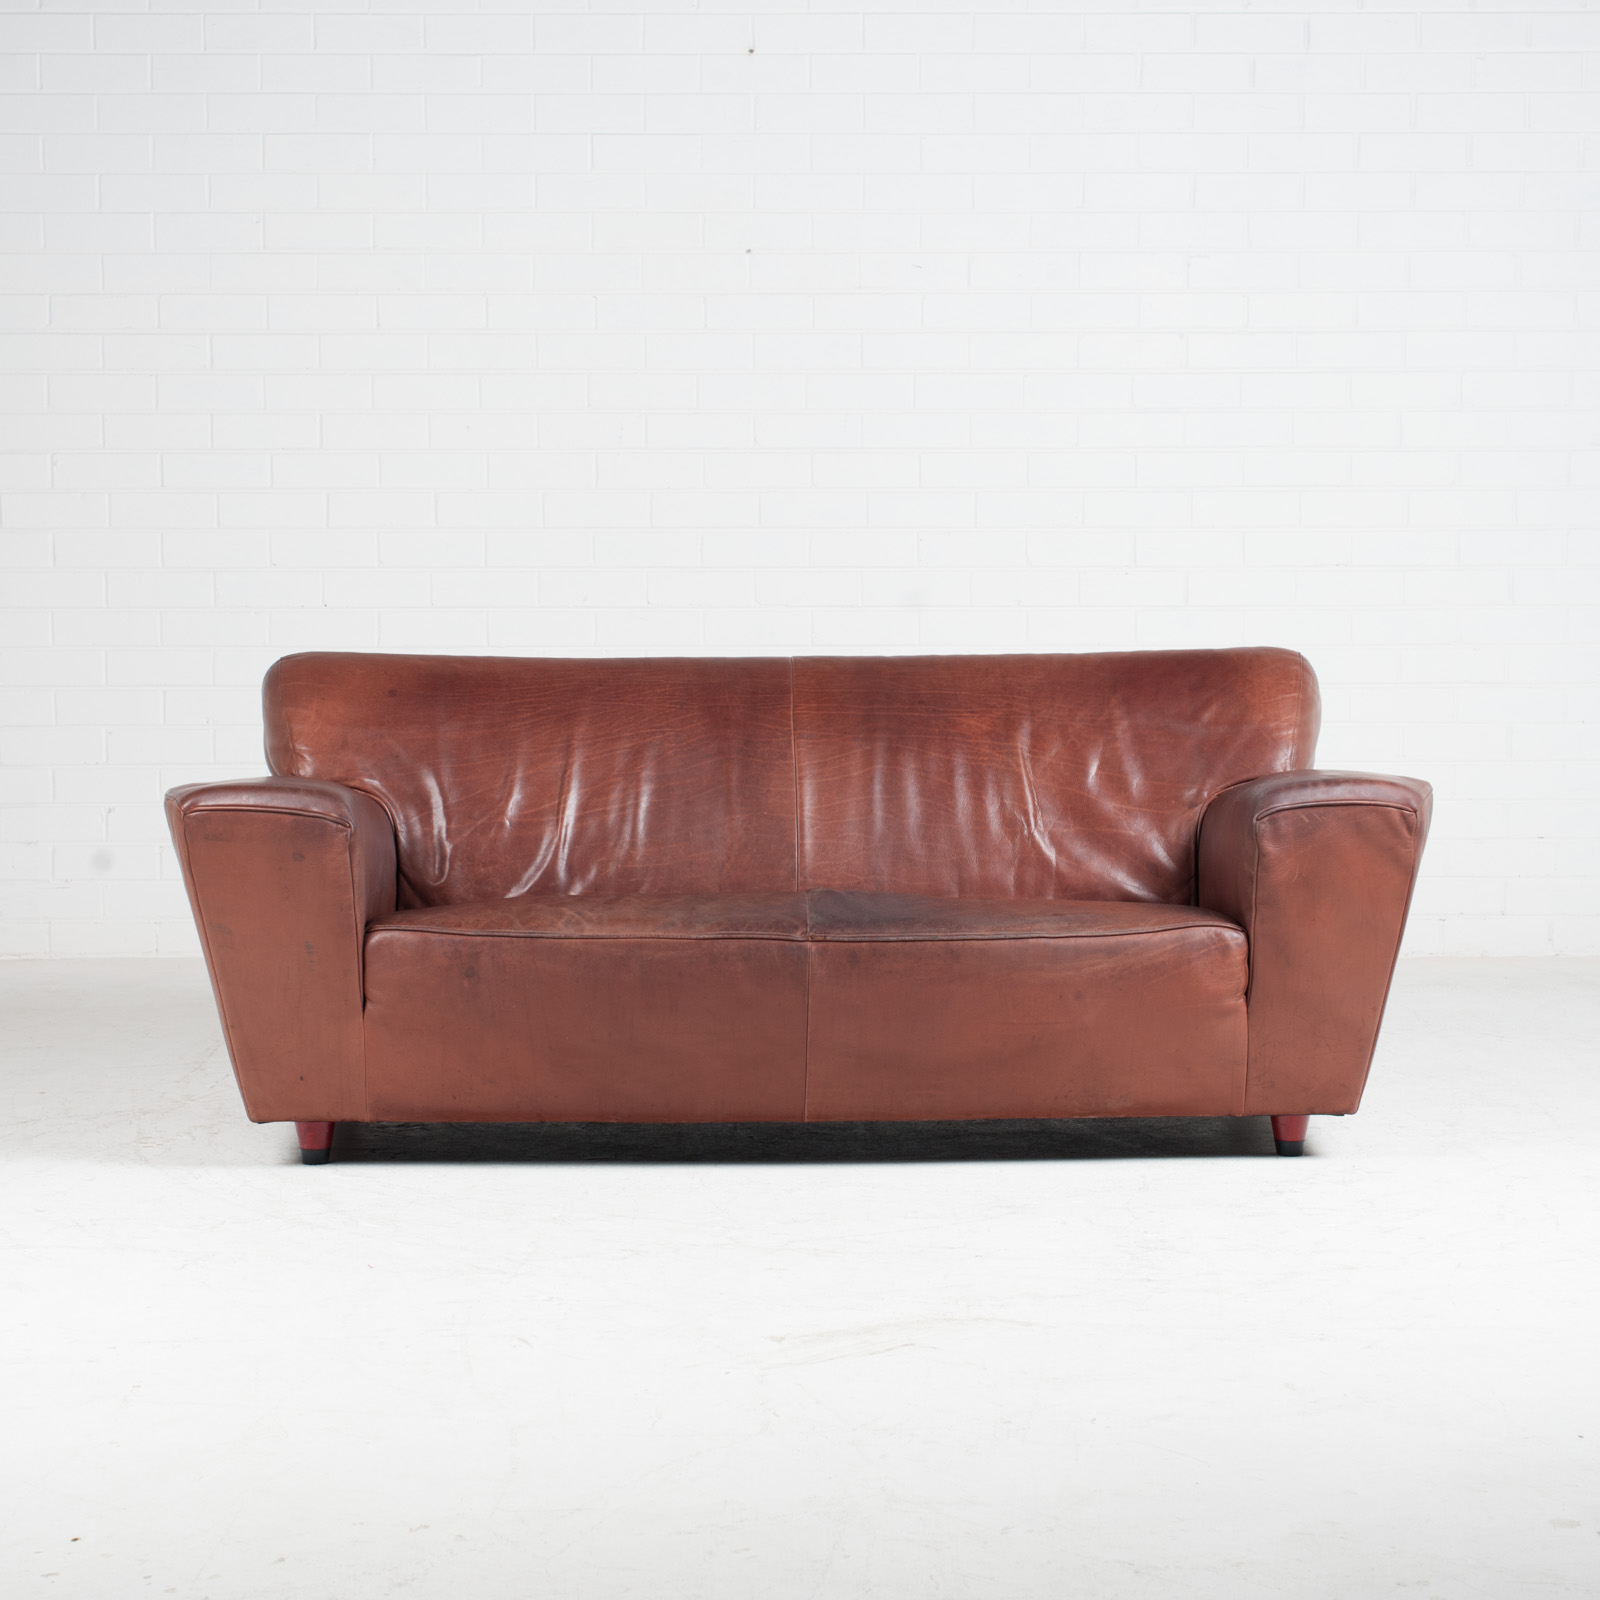 3 Seat Sofa By Montis In Red Leather 1960s Netherlands 02